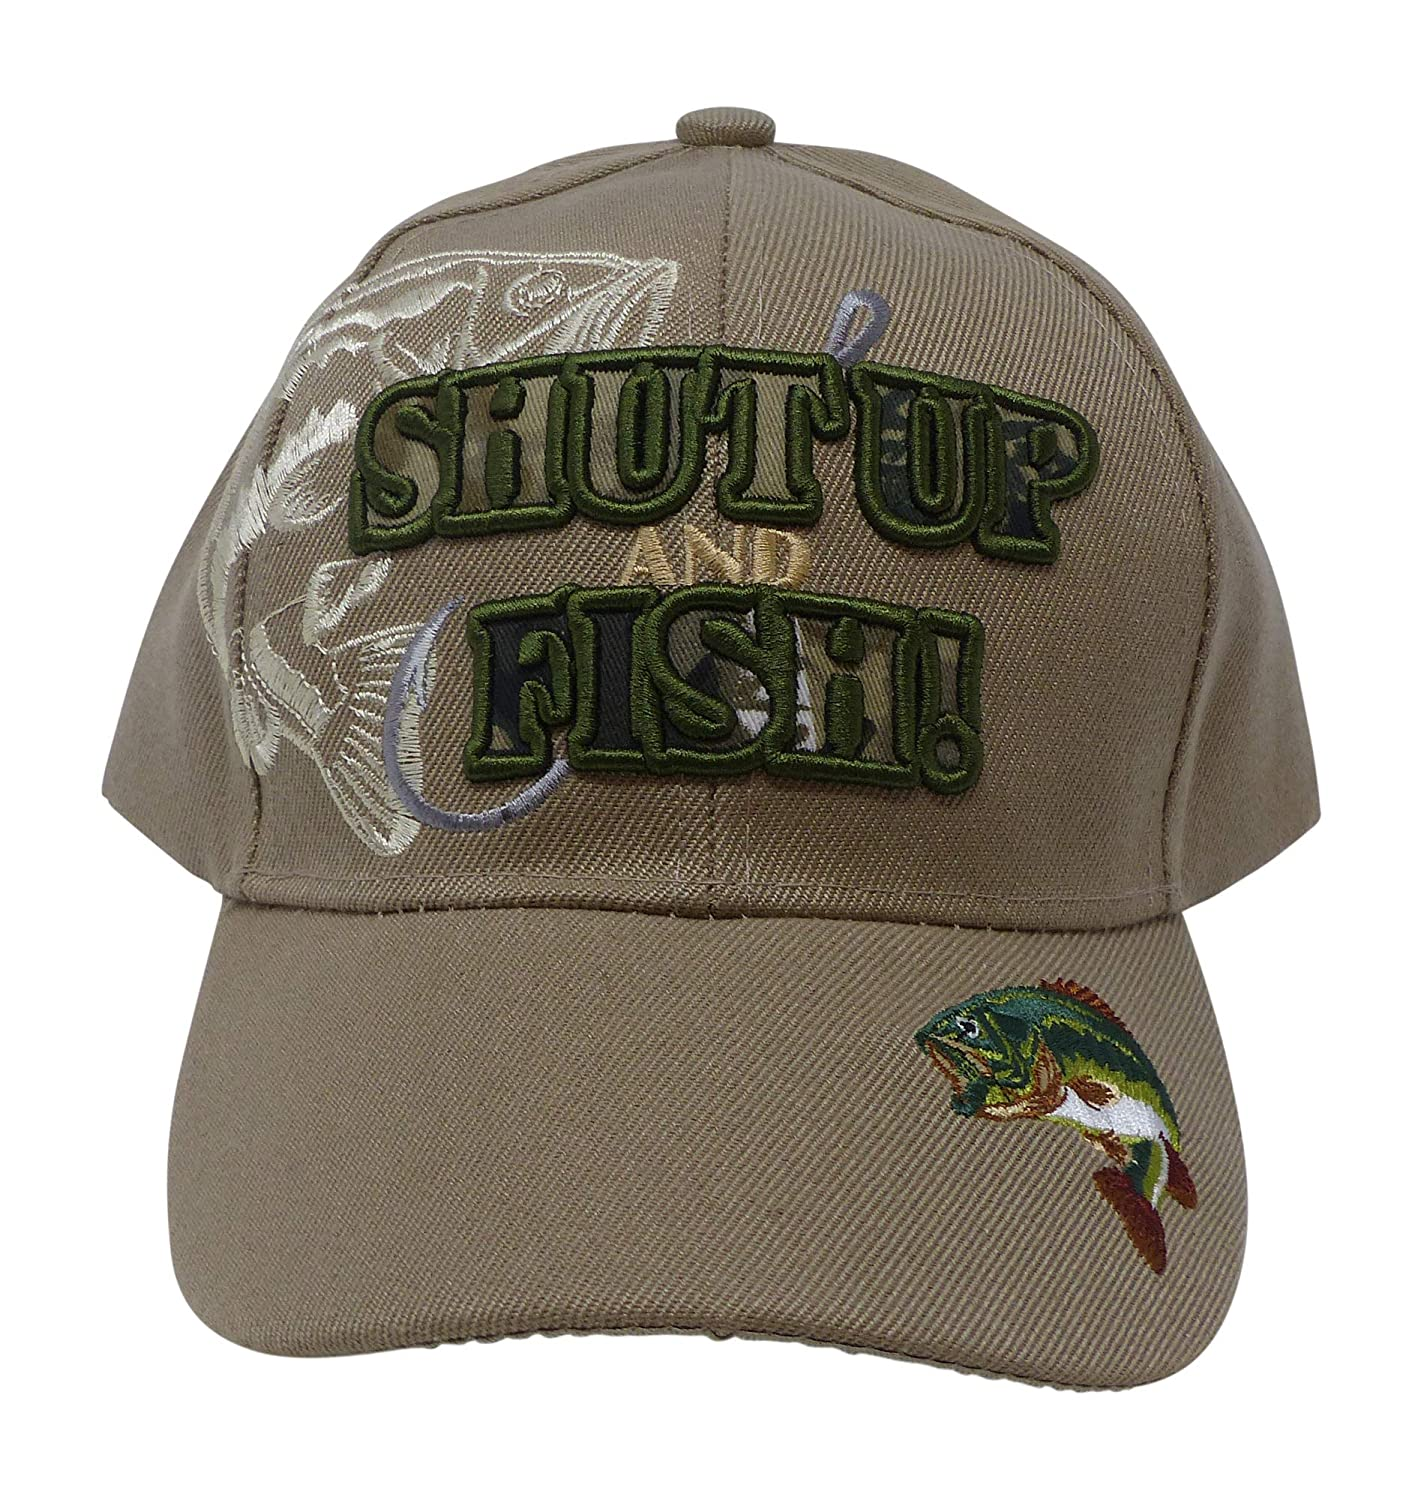 Military Glory Outdoor Fishing Hat – Funny Fishing Gift for Men